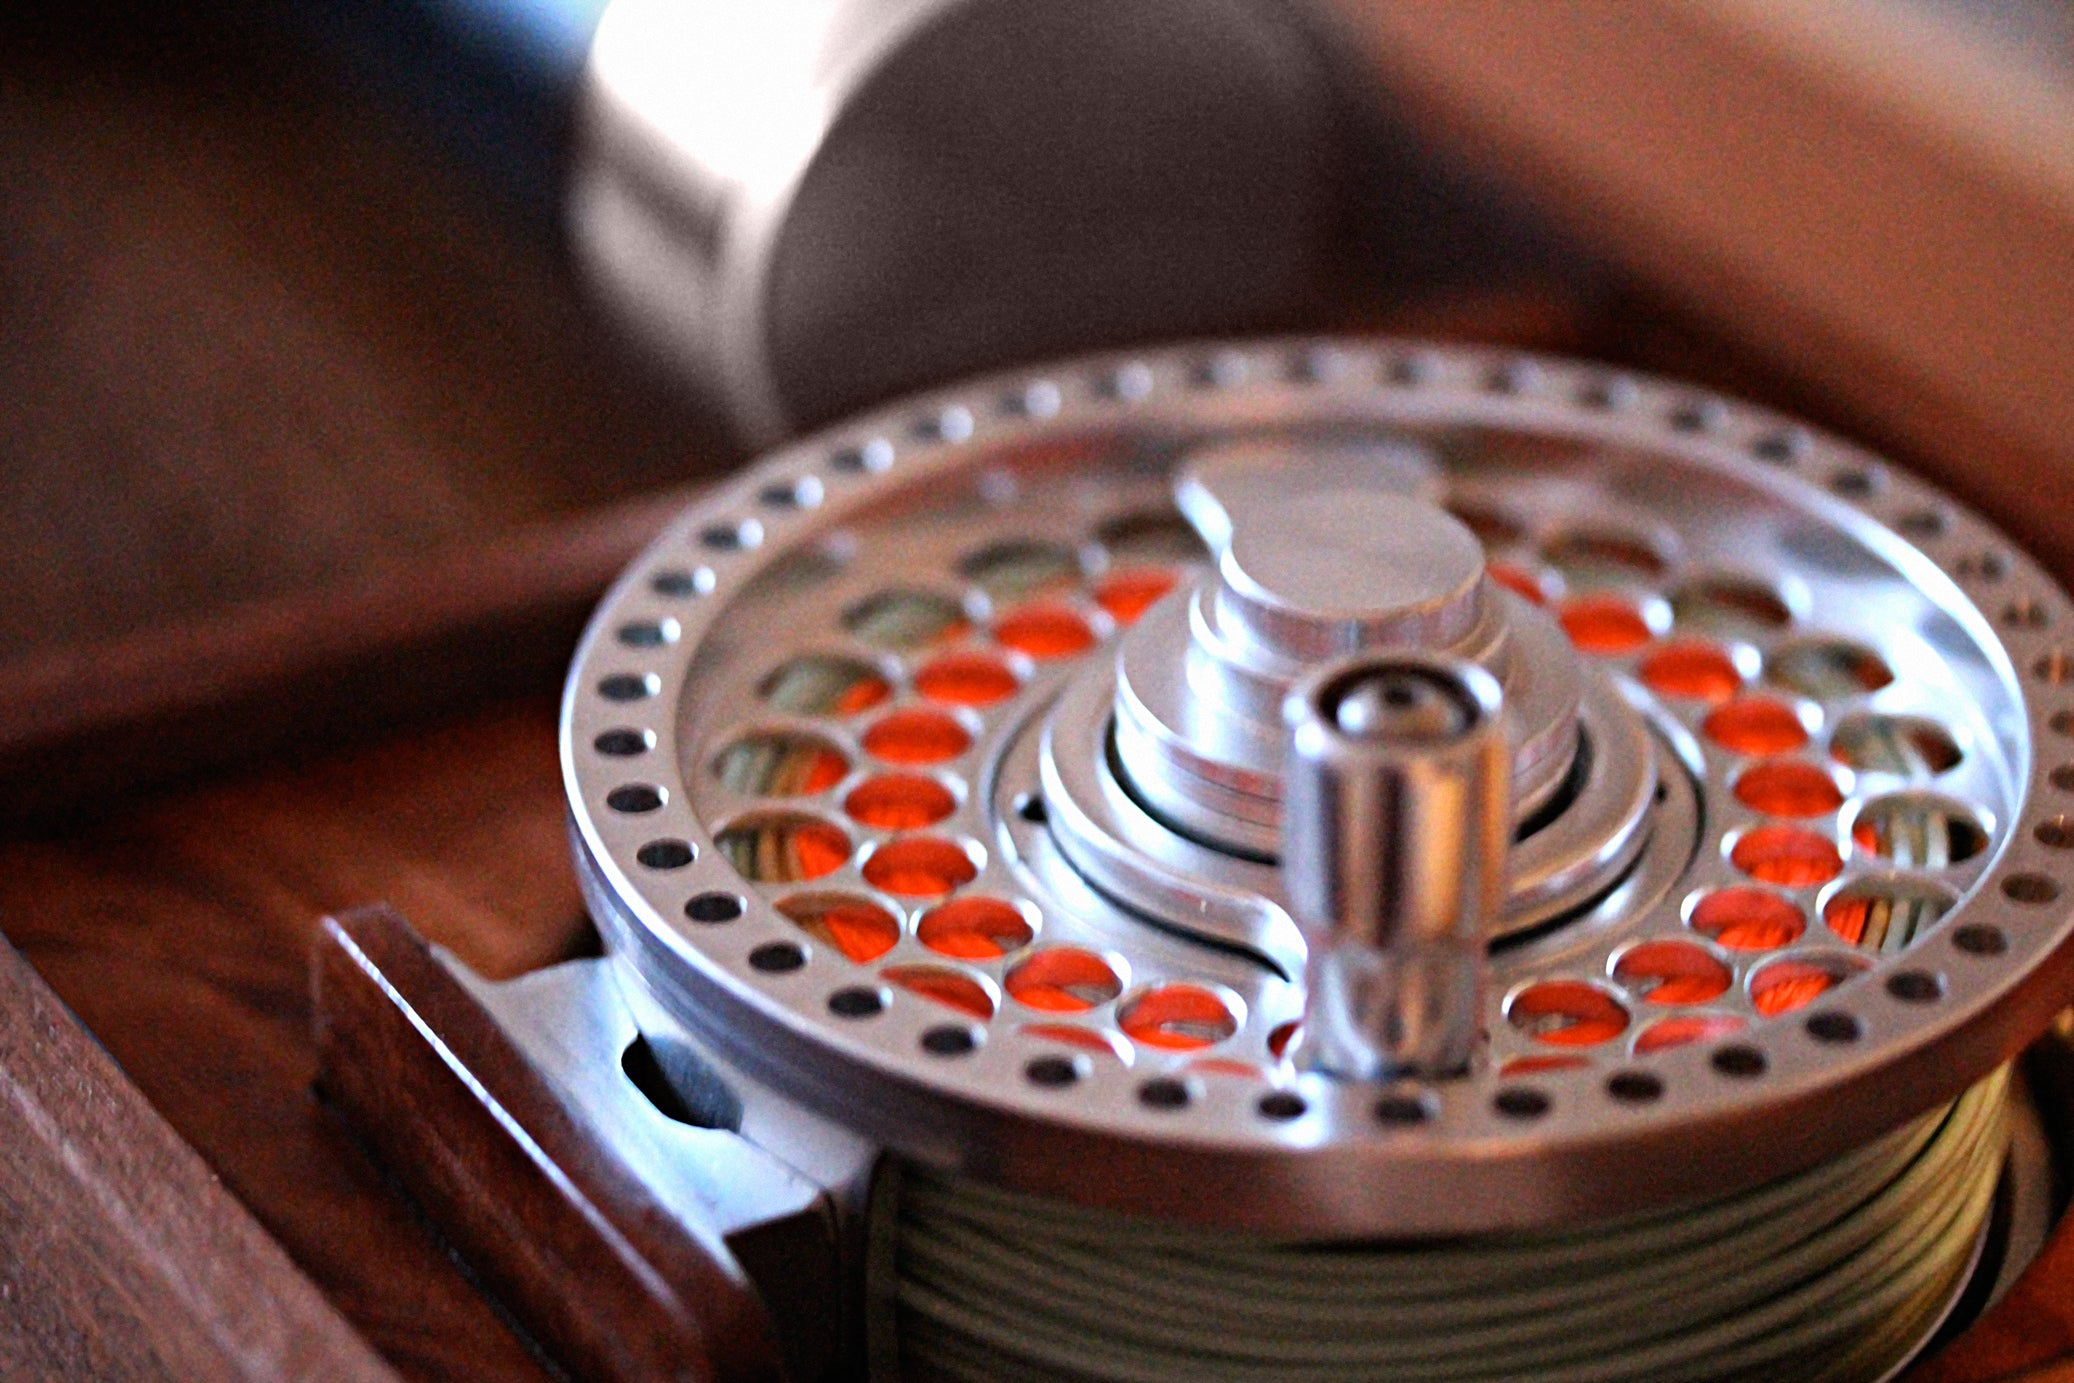 The Ernest Hemingway Signature 9 weight Fly Reel